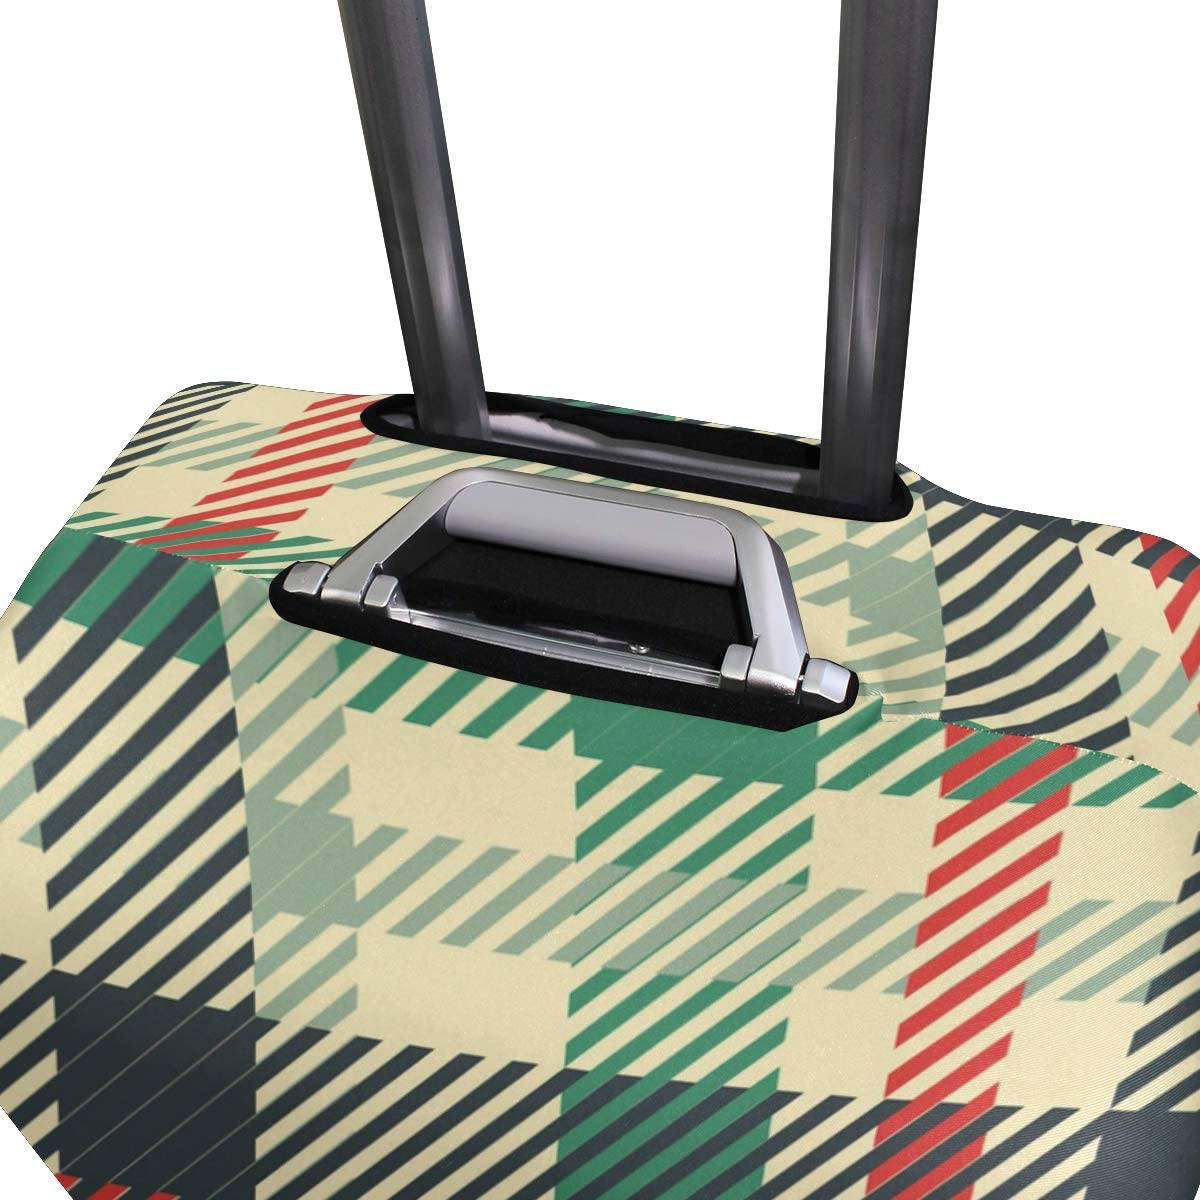 Blue Viper Tartan Patterns Luggage Protective Cover Suitcase Protector Fits 22-24 Inch Luggage